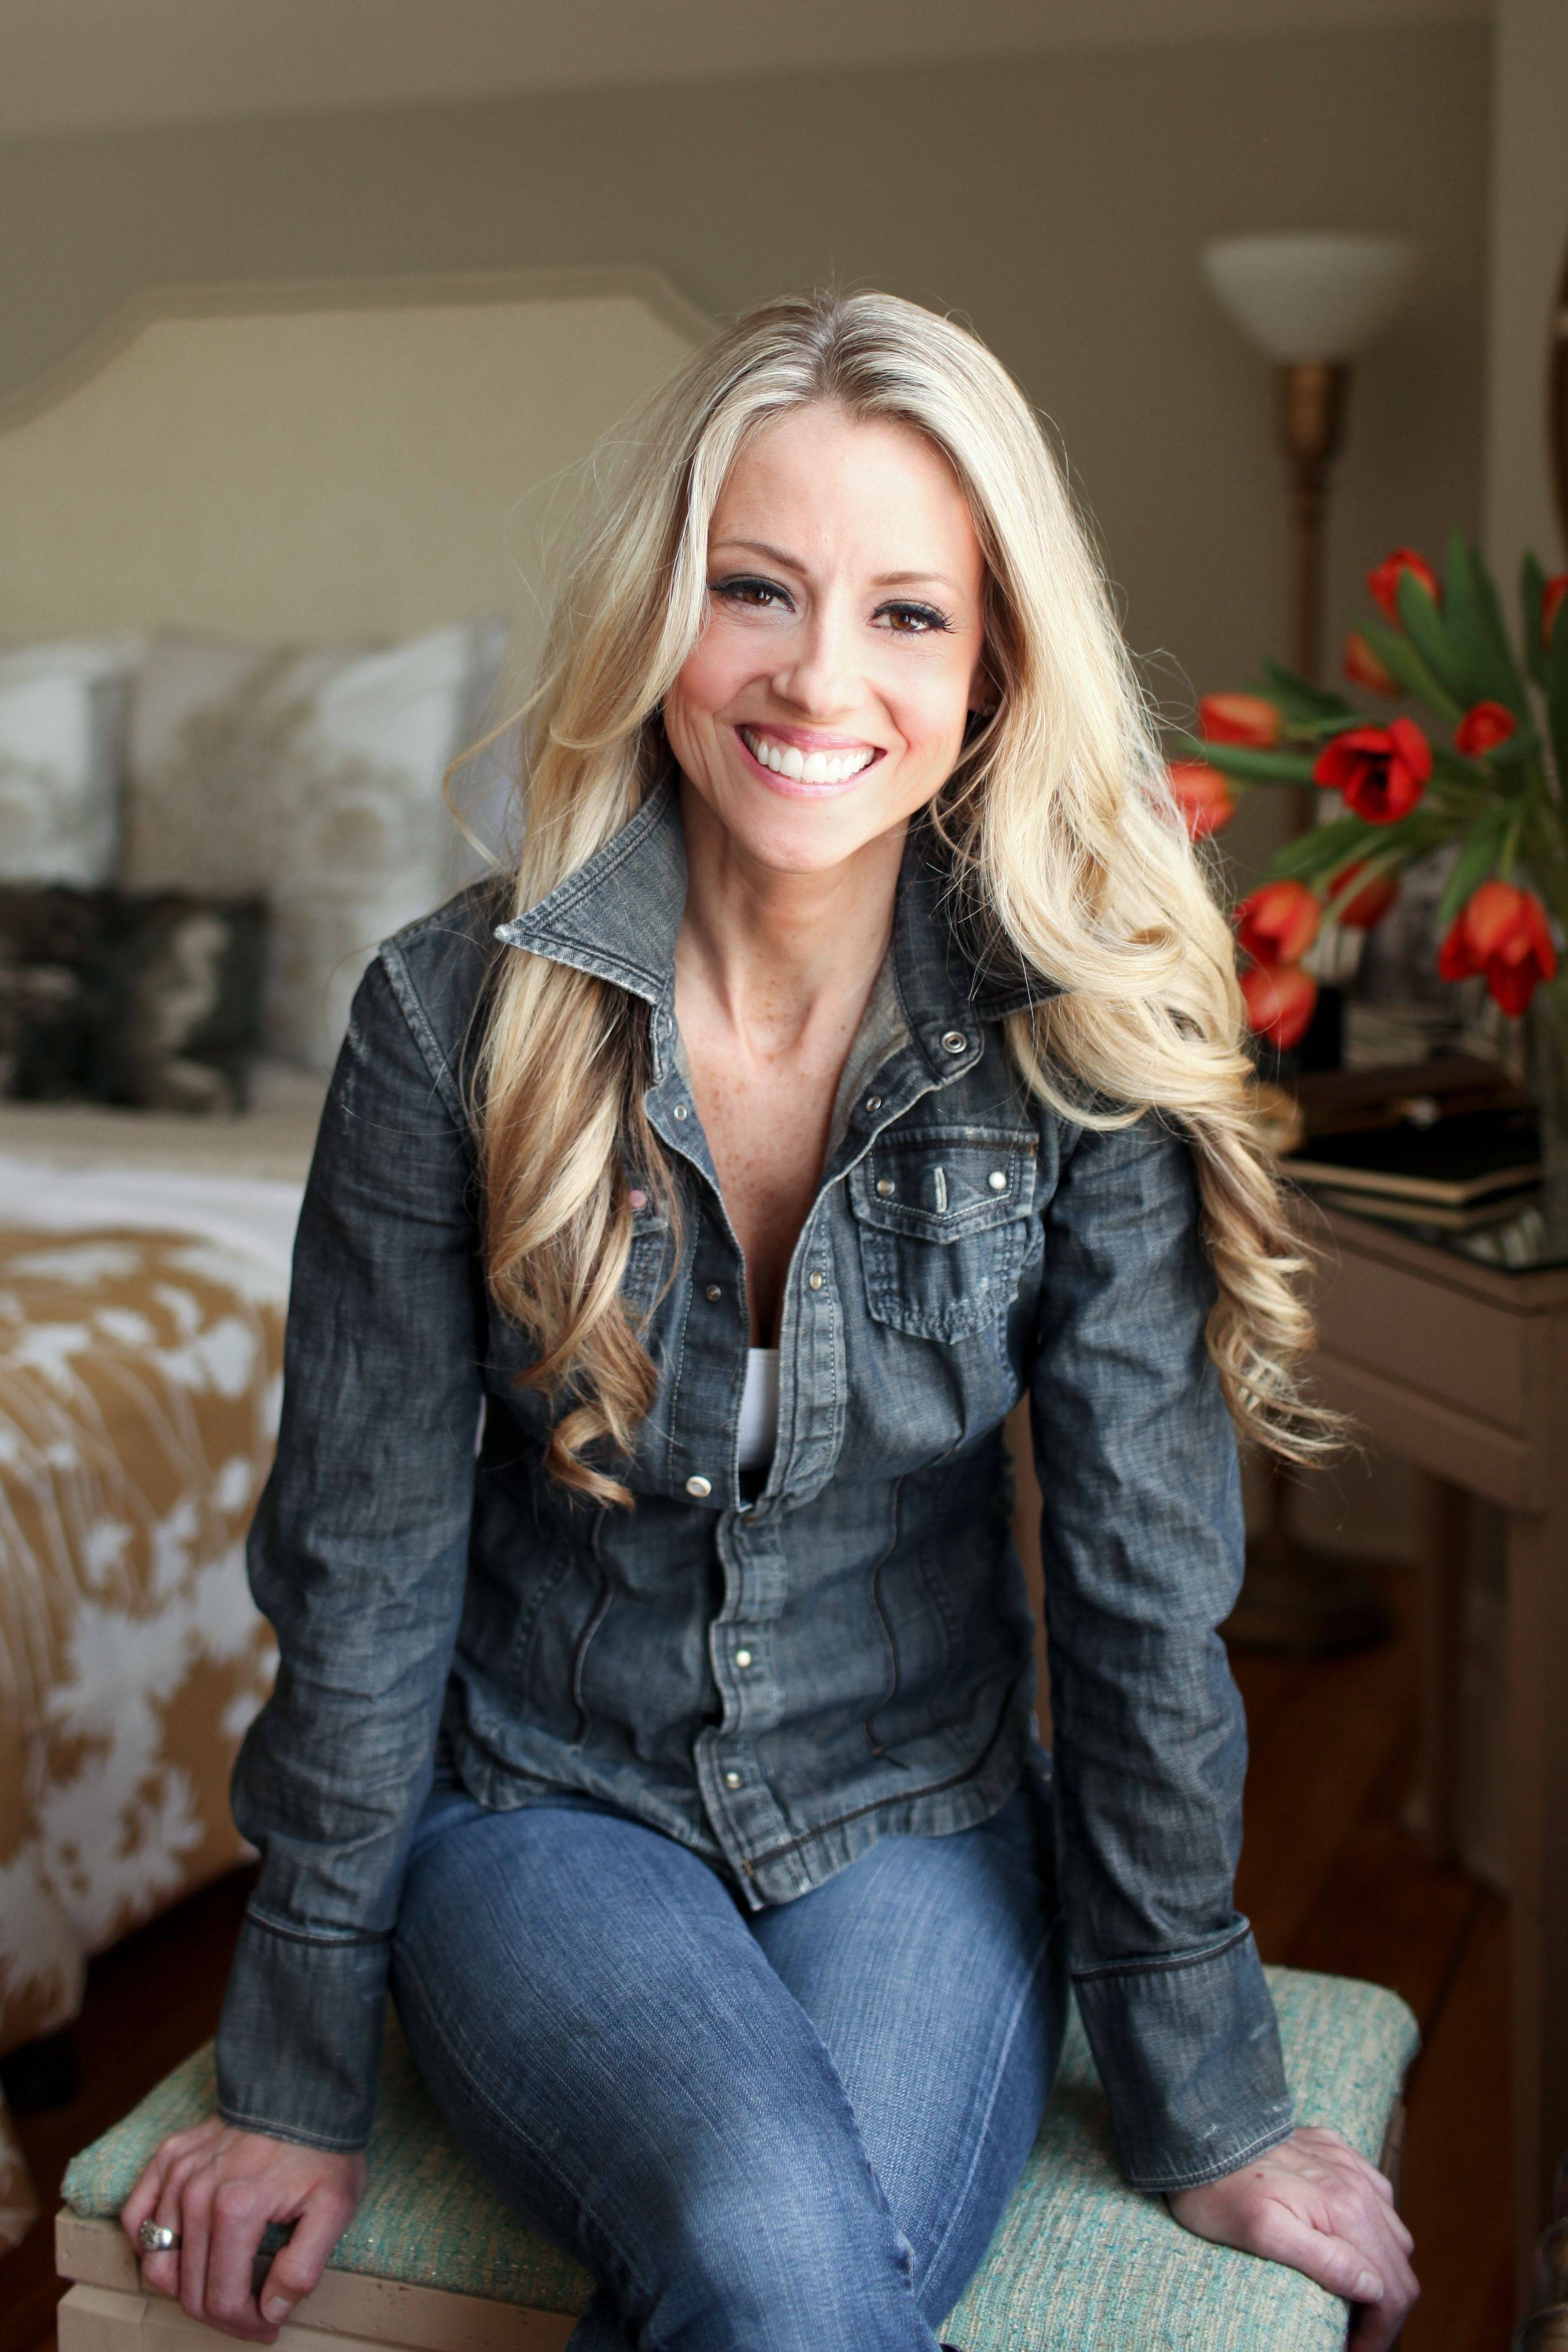 Nicole Curtis Host Of Hgtv 39 S Rehab Addict Will Be At The